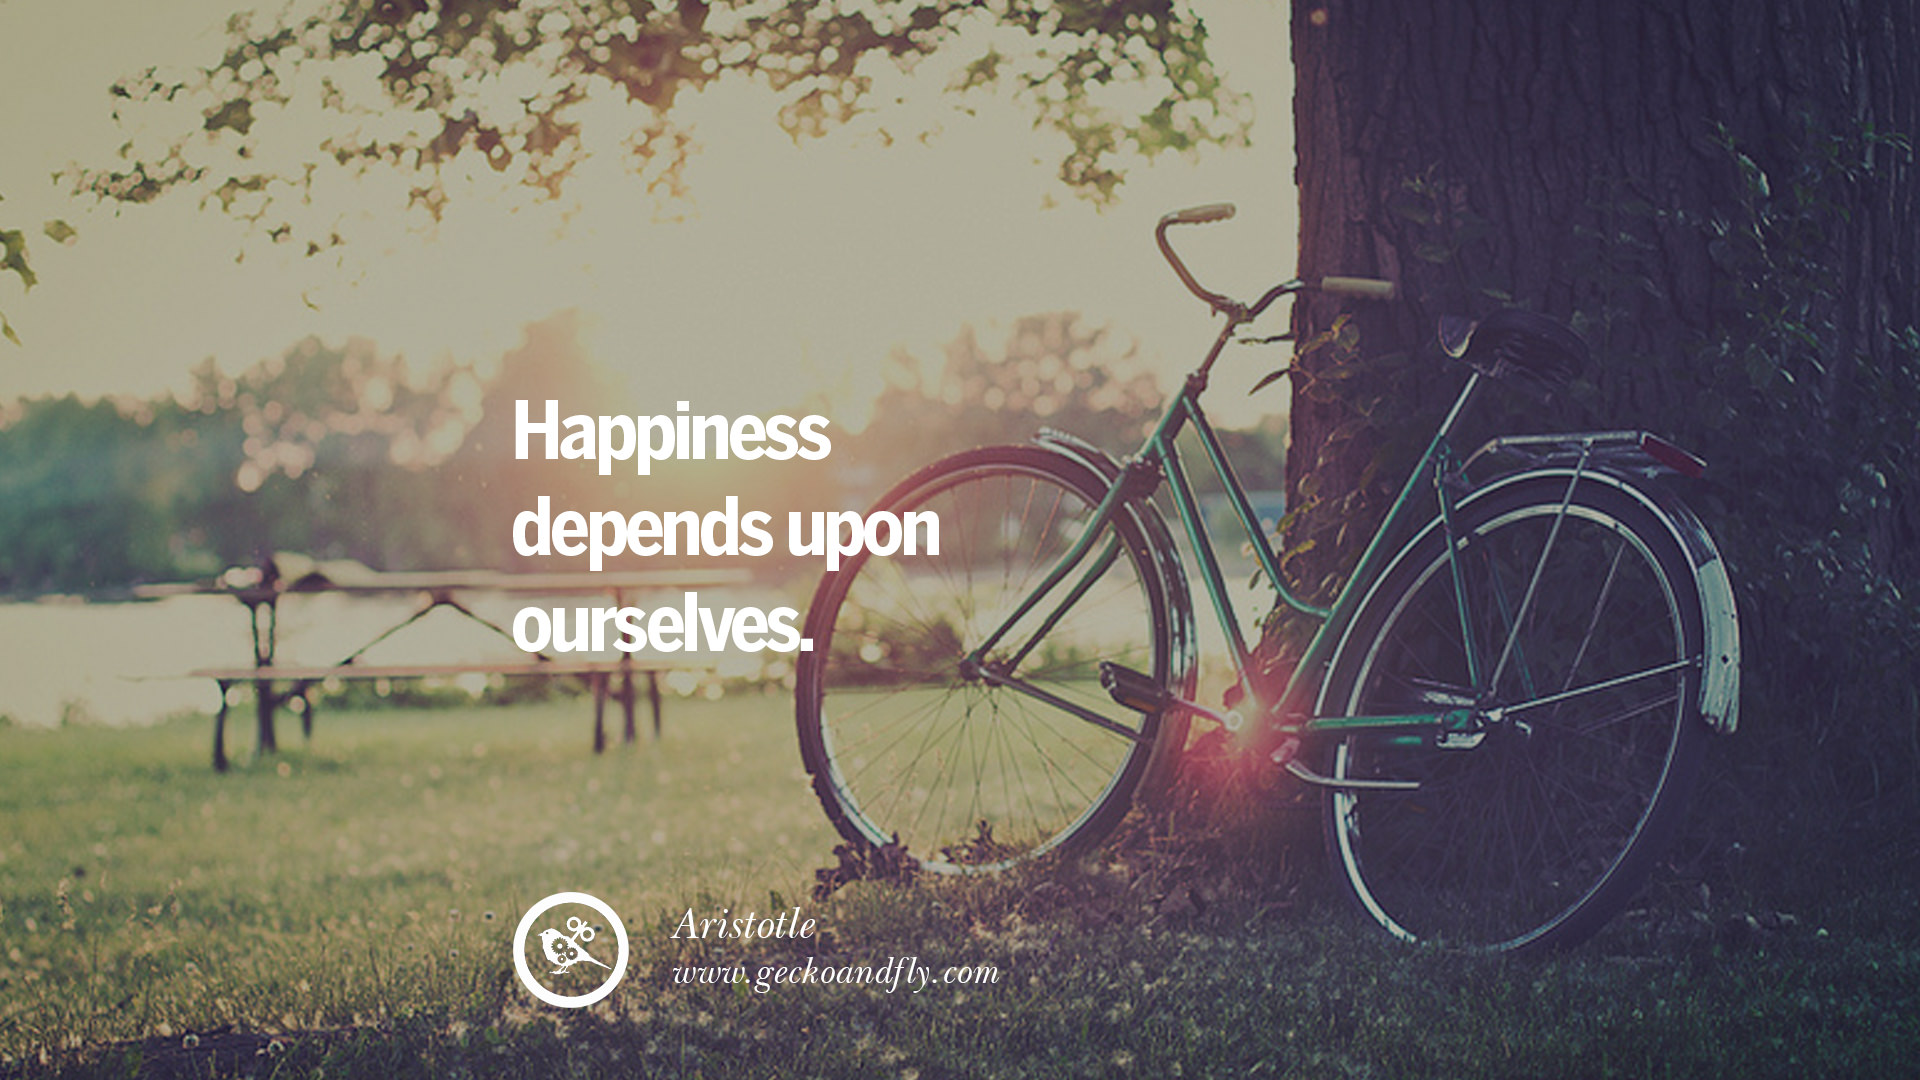 Happiness Depends On Ourselves Aristotle Quote: 22 Quotes About Pursuit Of Happiness To Change Your Thinking